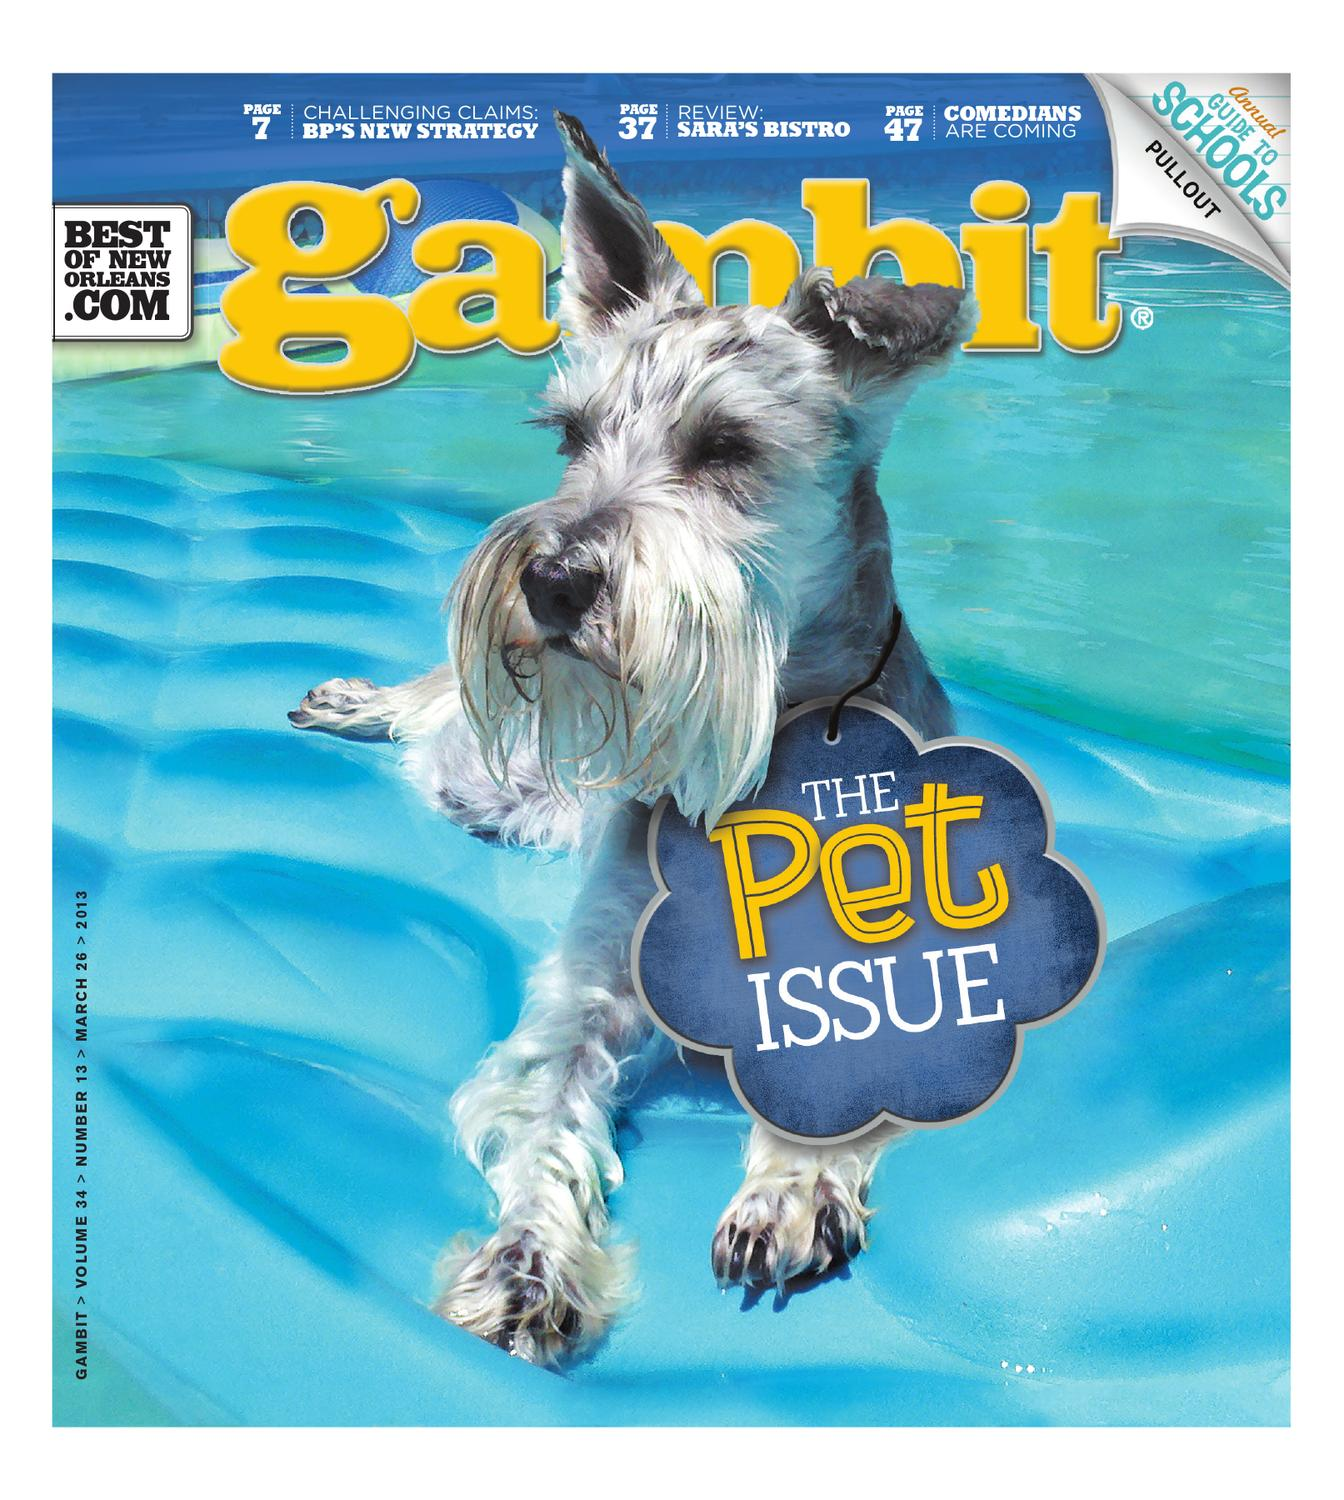 Gambit New Orleans by Gambit New Orleans - issuu